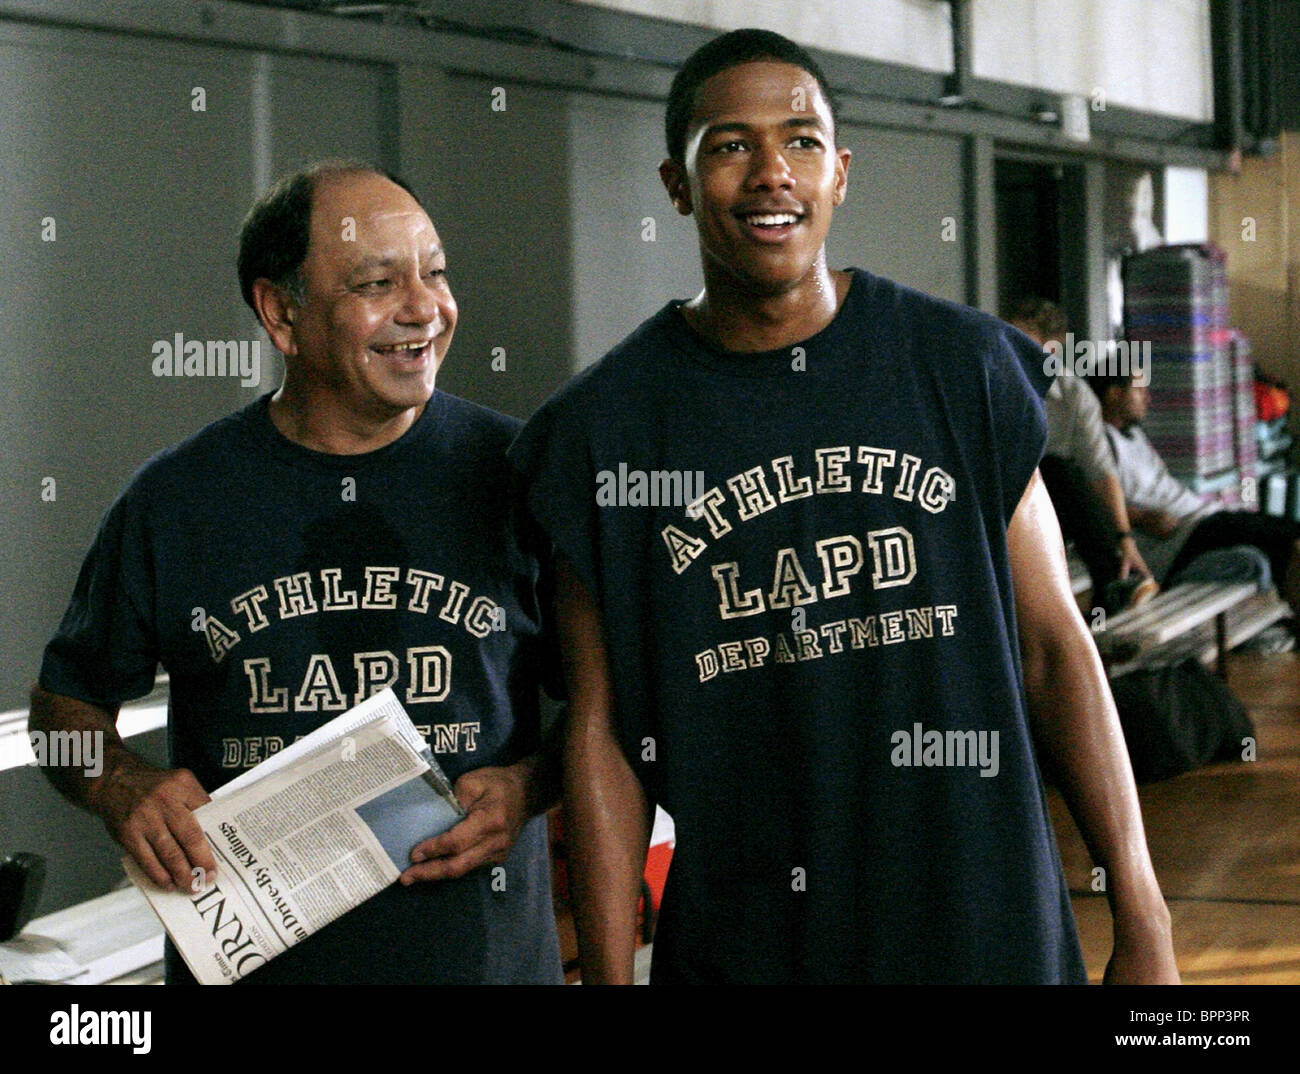 CHEECH MARIN & NICK CANNON THE UNDERCLASSMAN; THE UNDERCLASS MAN (2005) - Stock Image